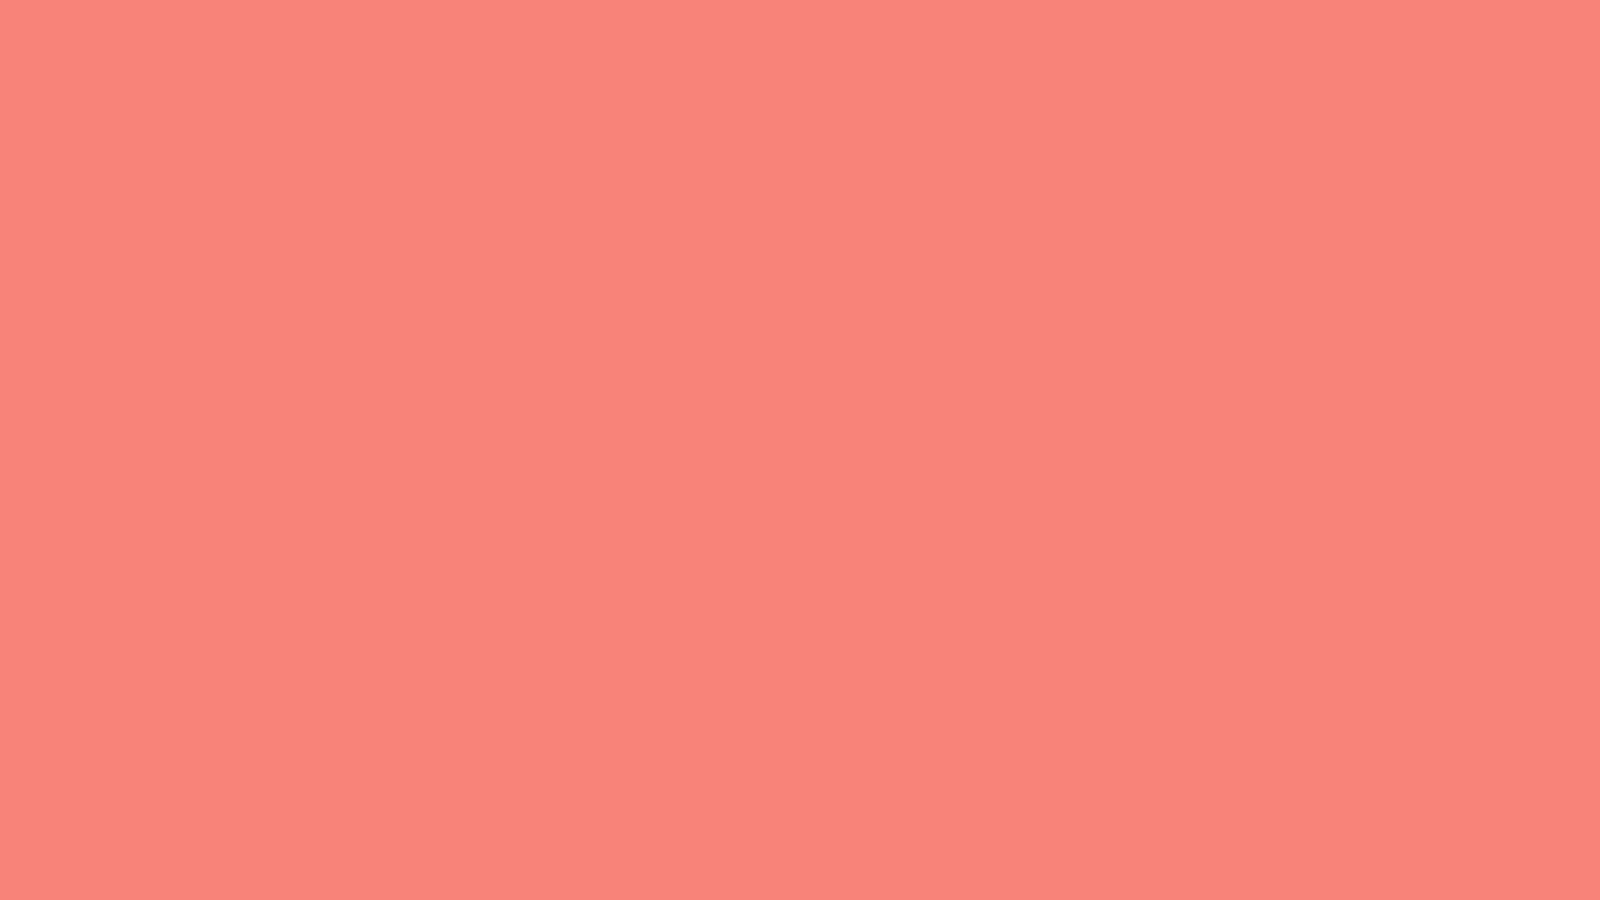 1600x900 Coral Pink Solid Color Background